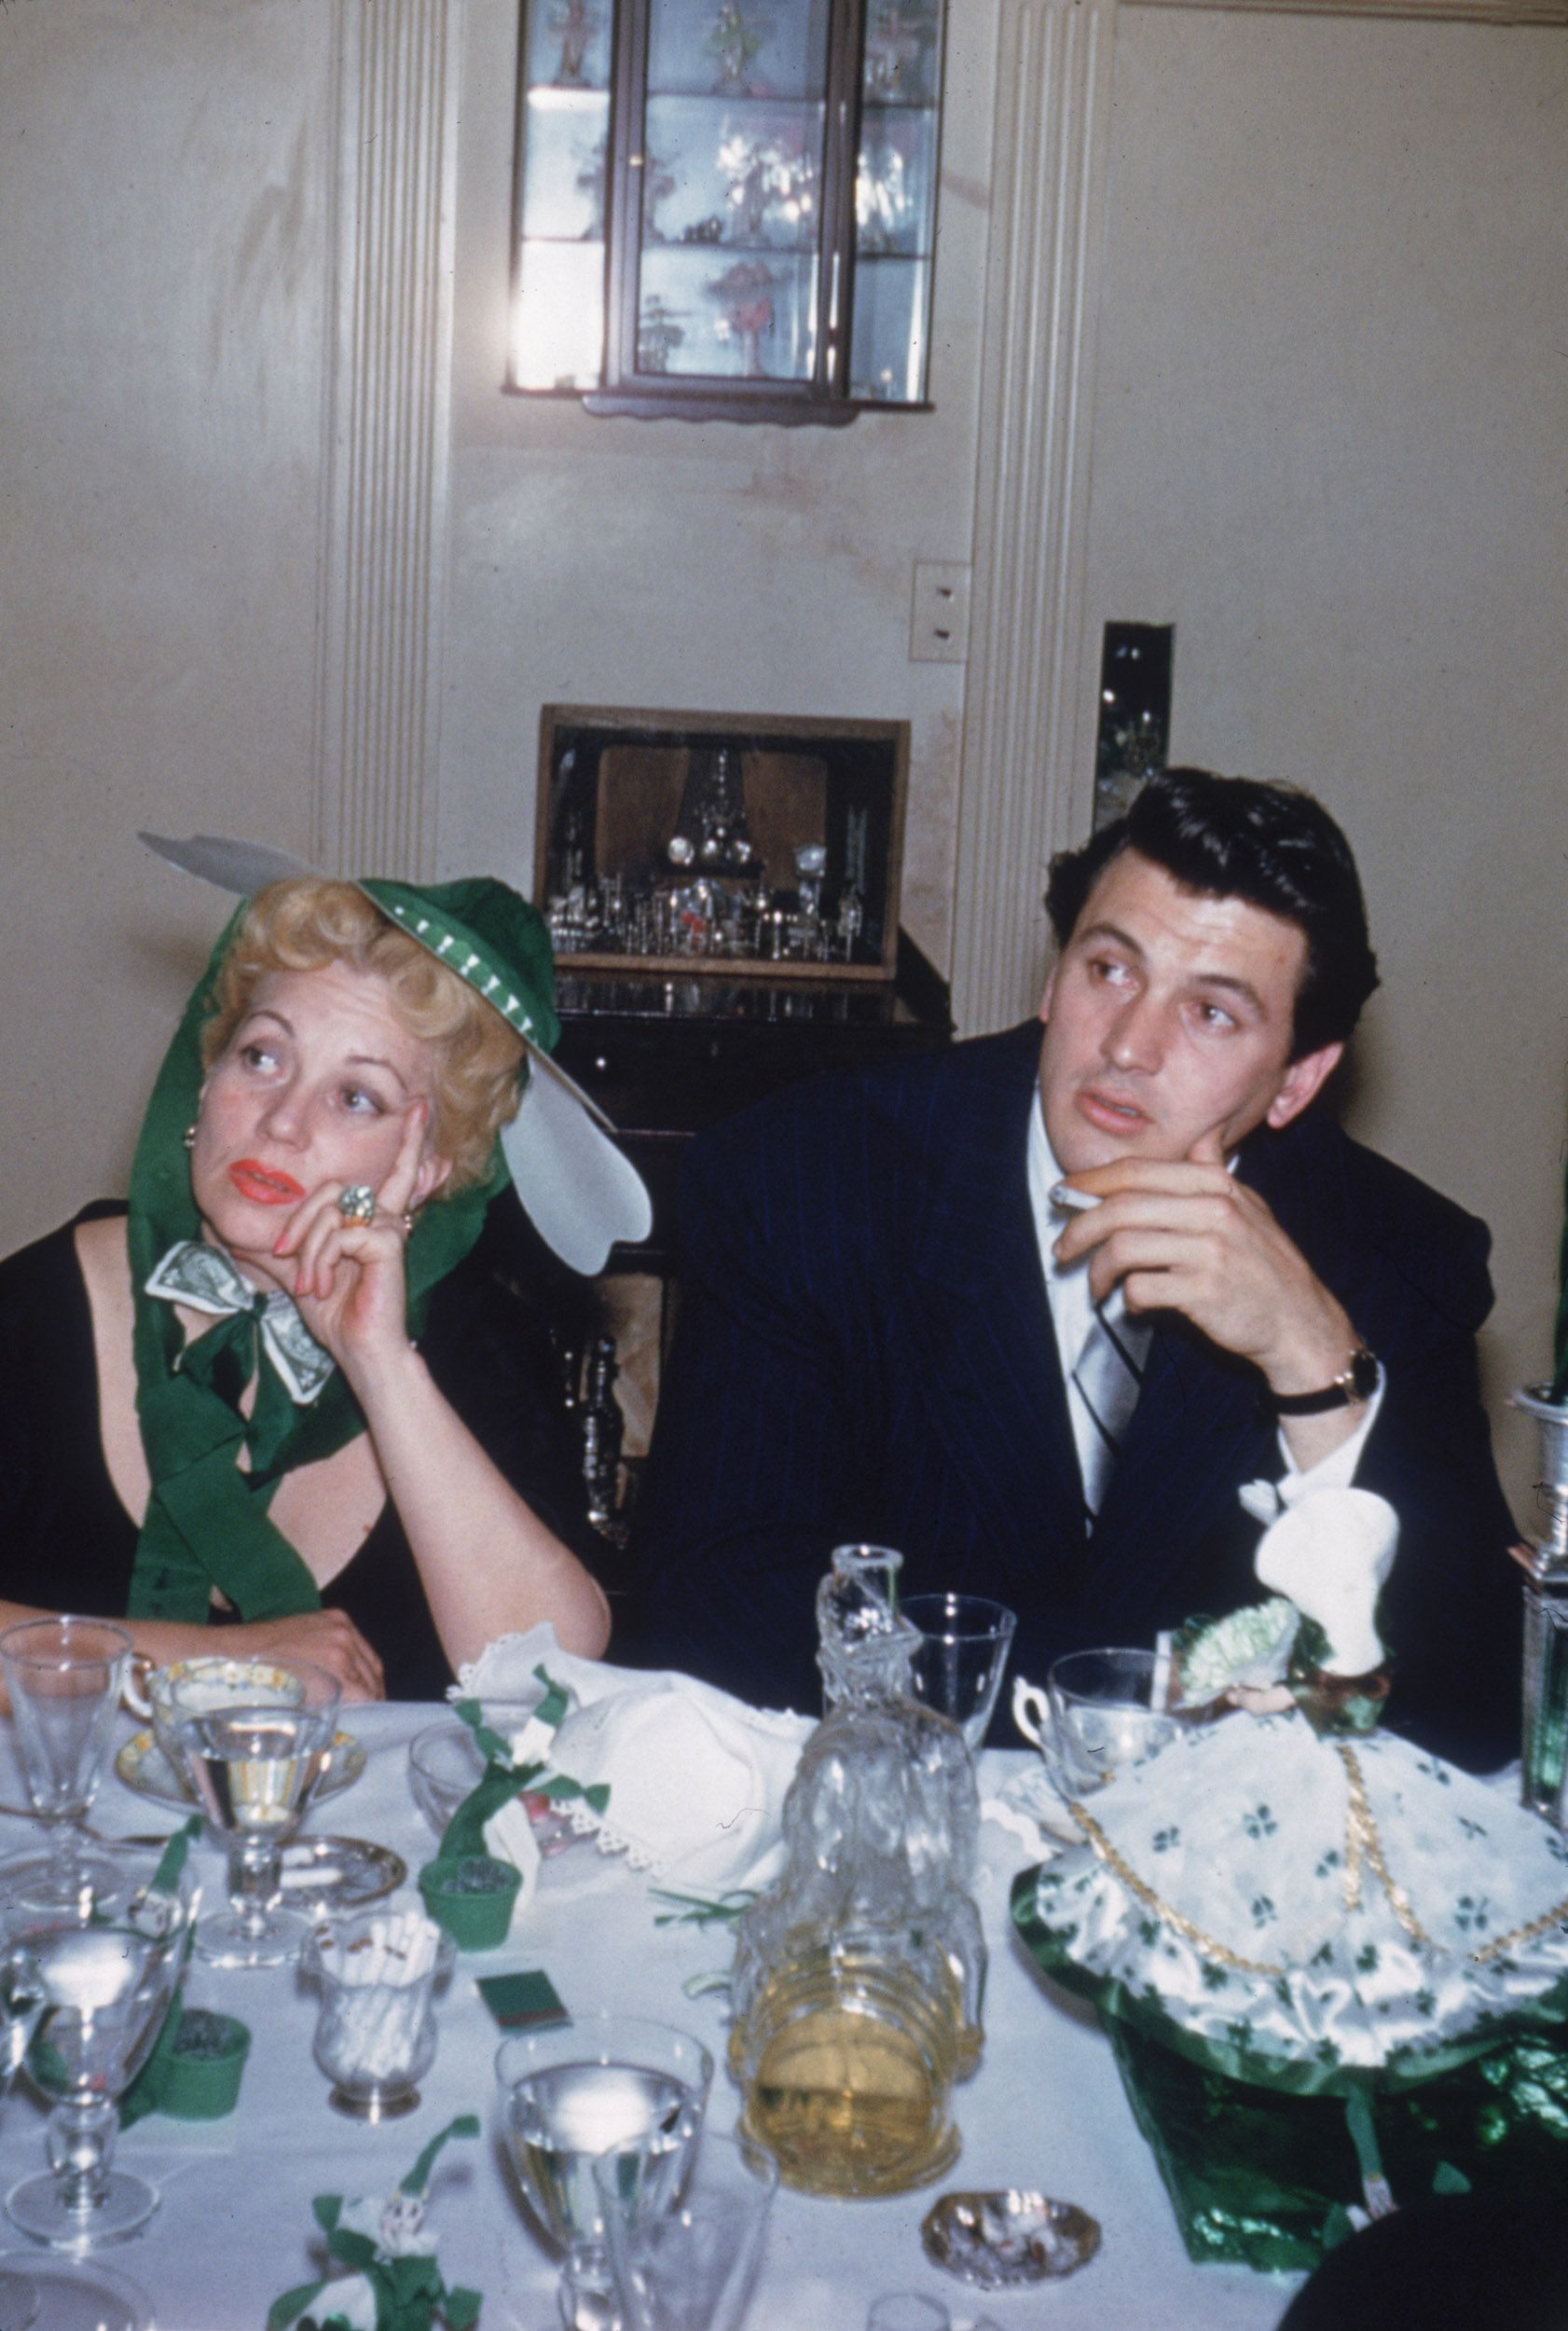 American actors Ann Sothern and Rock Hudson sit next to each other at a St. Patrick's Day party at the home of actor Van Johnson and his wife, Eve, in Beverly Hills, California in 1952.